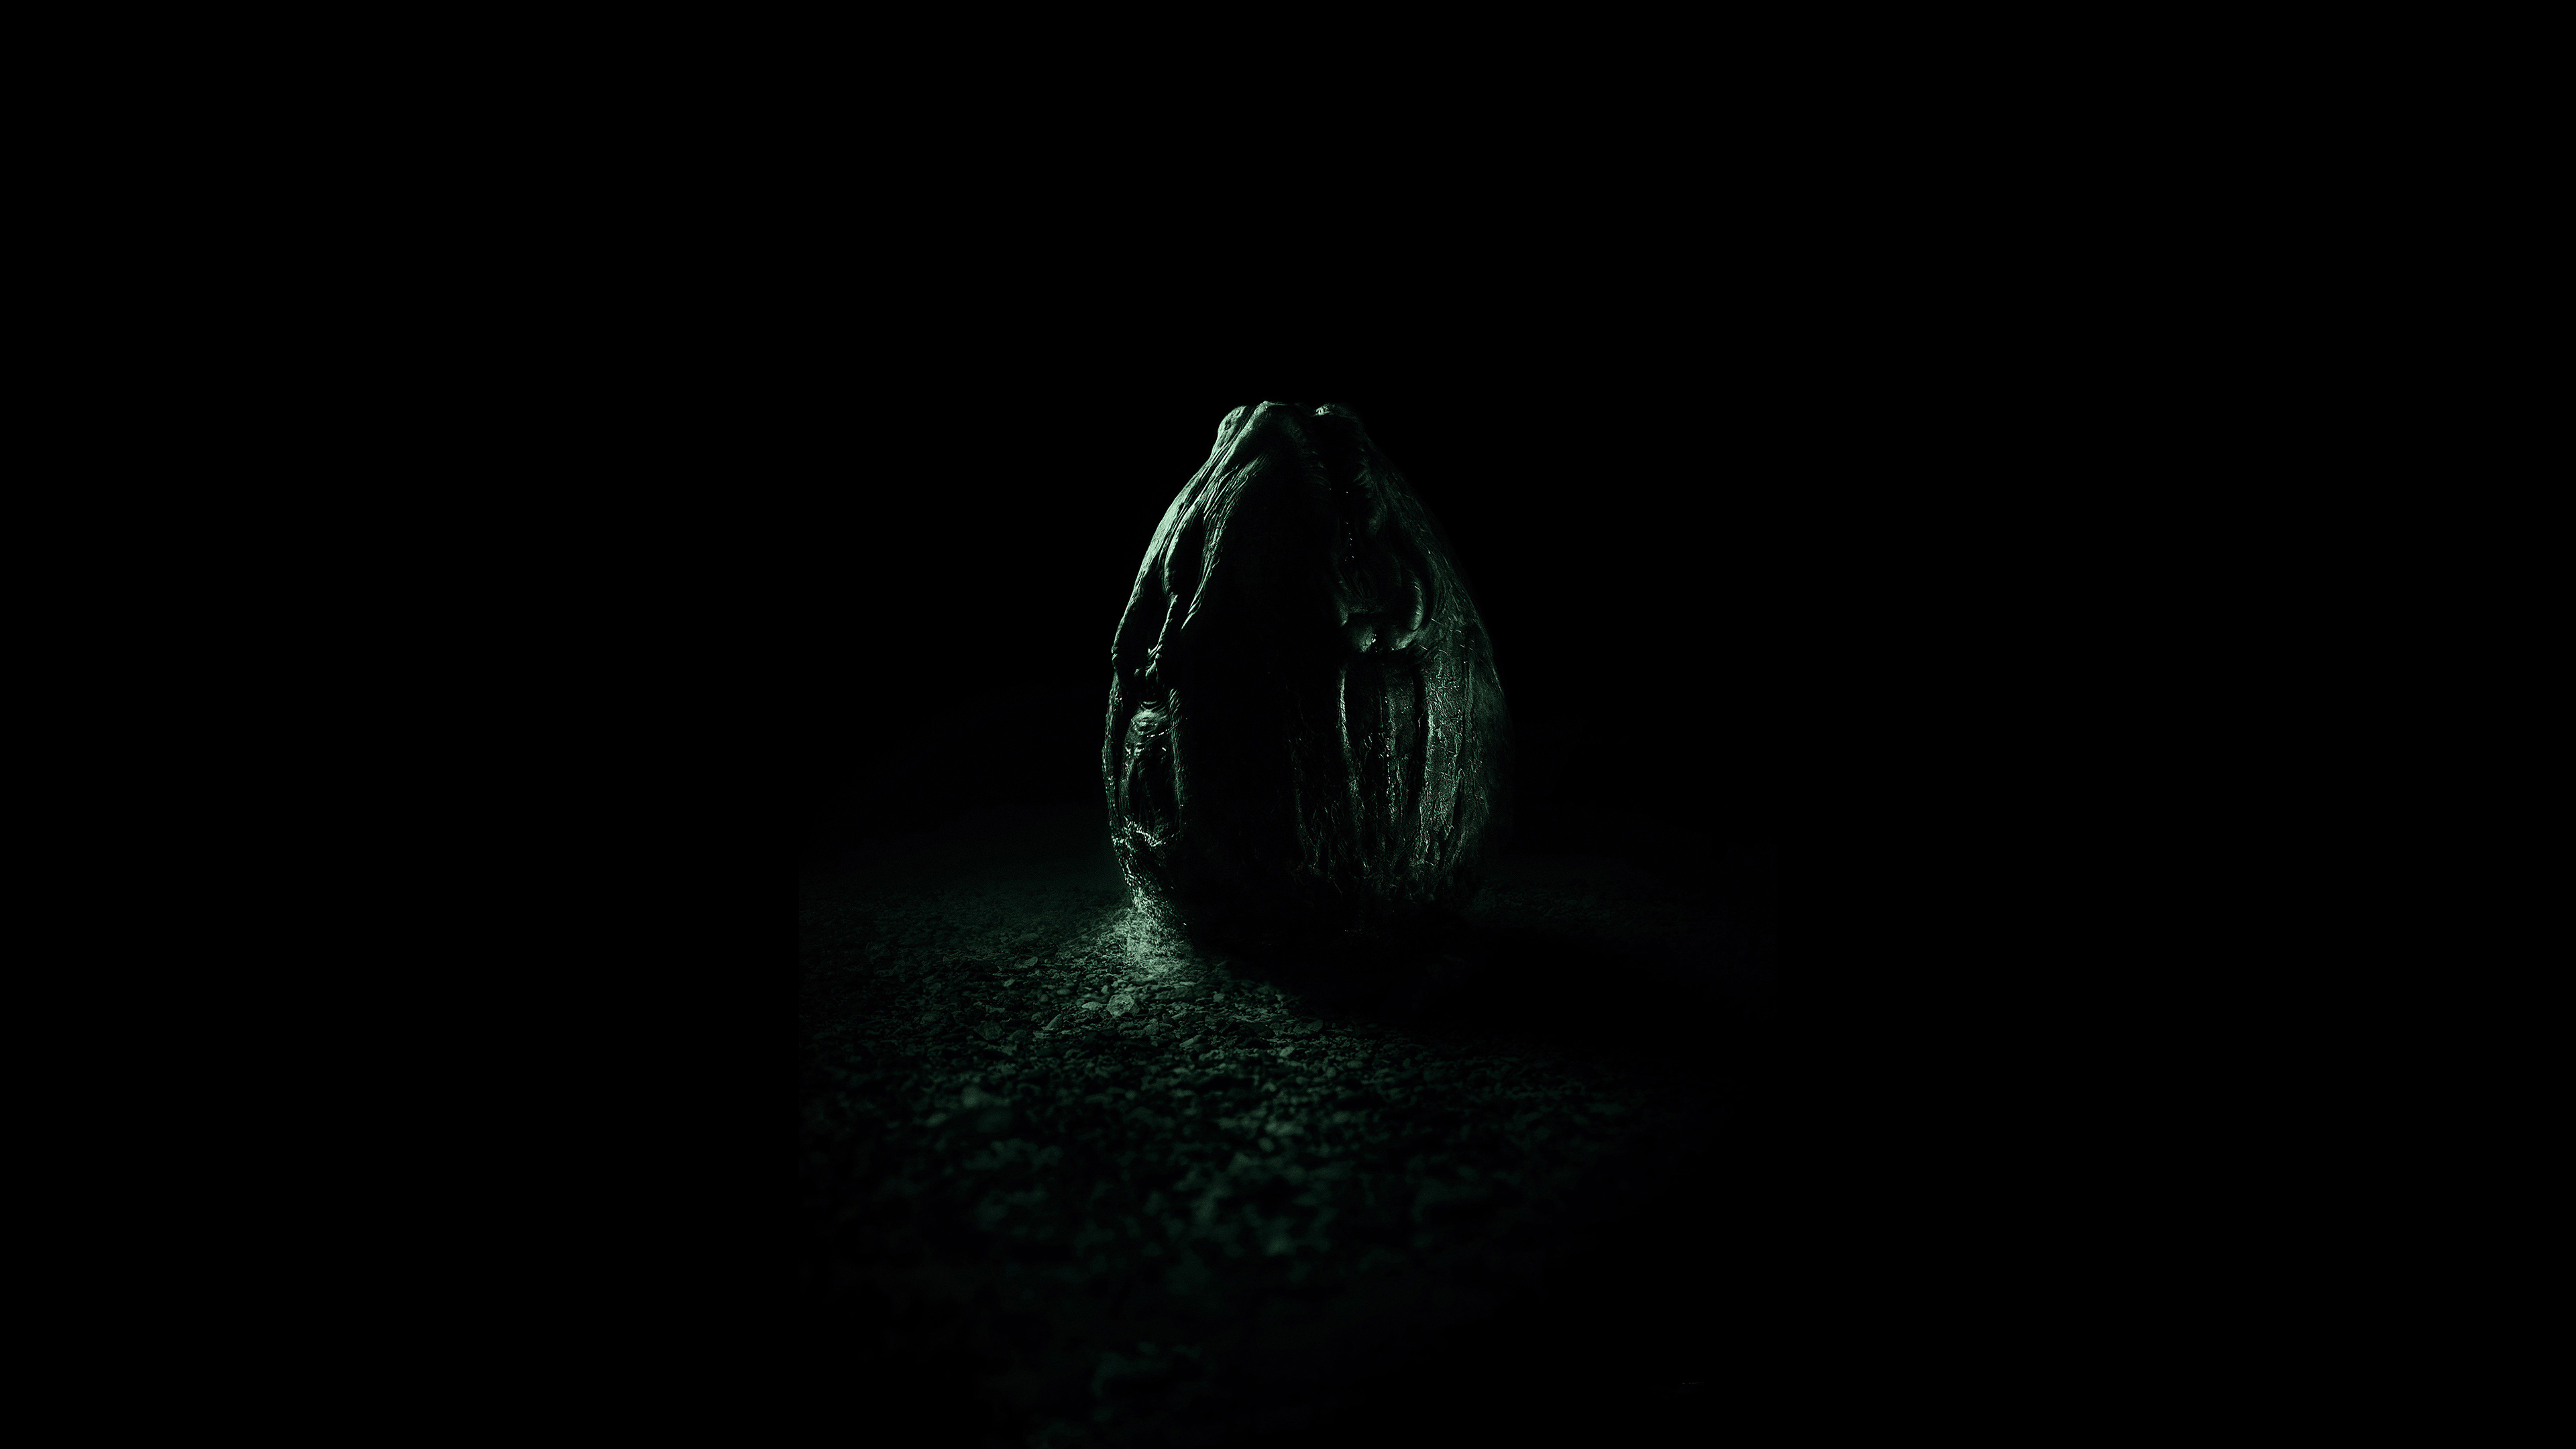 2017 alien covenant movie 1536401764 - 2017 Alien Covenant Movie - hd-wallpapers, alien convenant wallpapers, 4k-wallpapers, 2017 movies wallpapers